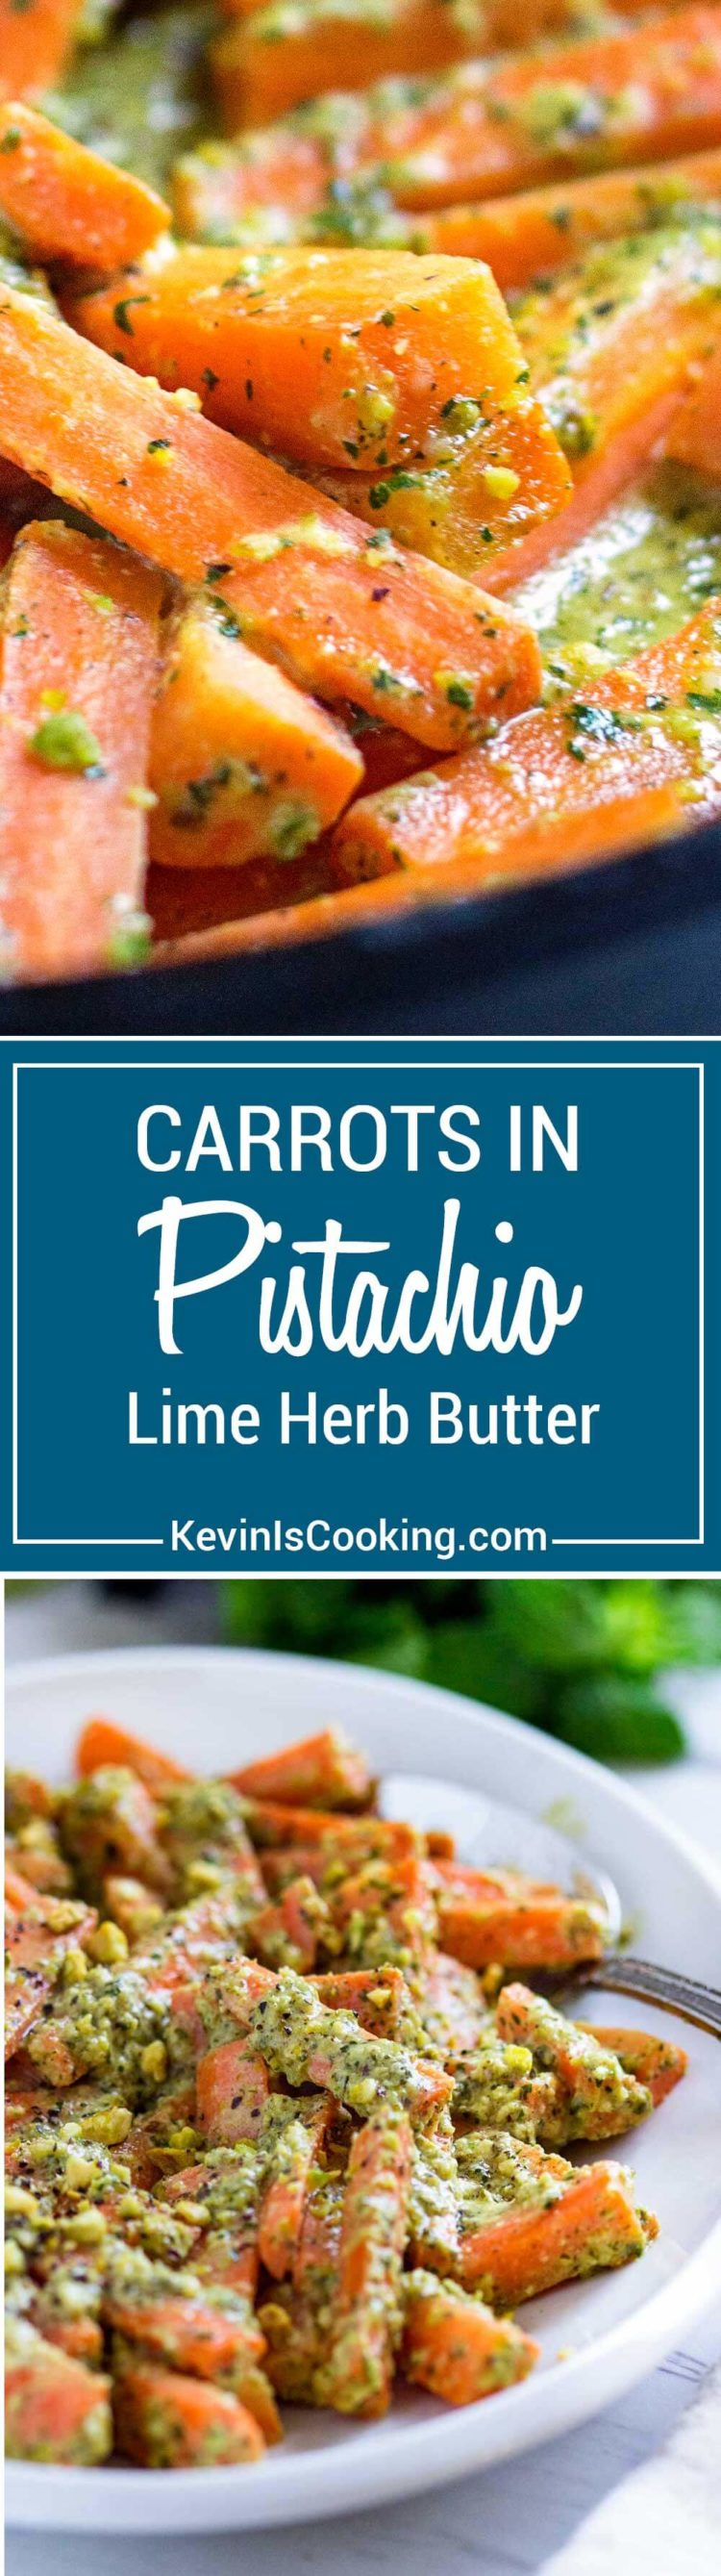 These Carrots with Pistachio Herb Butter get crunch appeal from pistachios sprinkled on top and in a wonderful lime and mint butter.